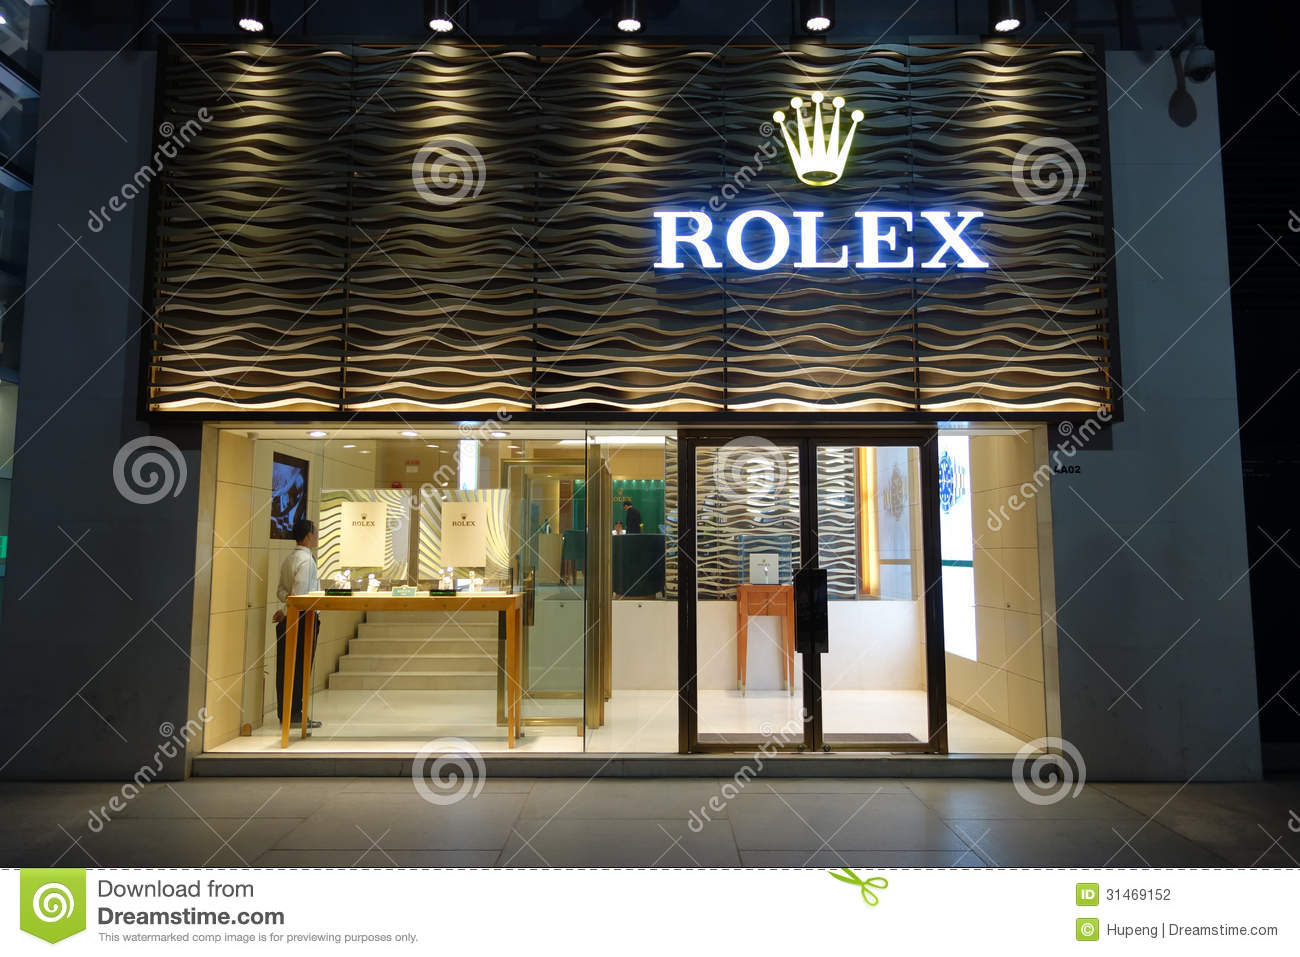 rolex-retail-store-beijing-located-wangfujing-pedestrian-street-31469152.jpg